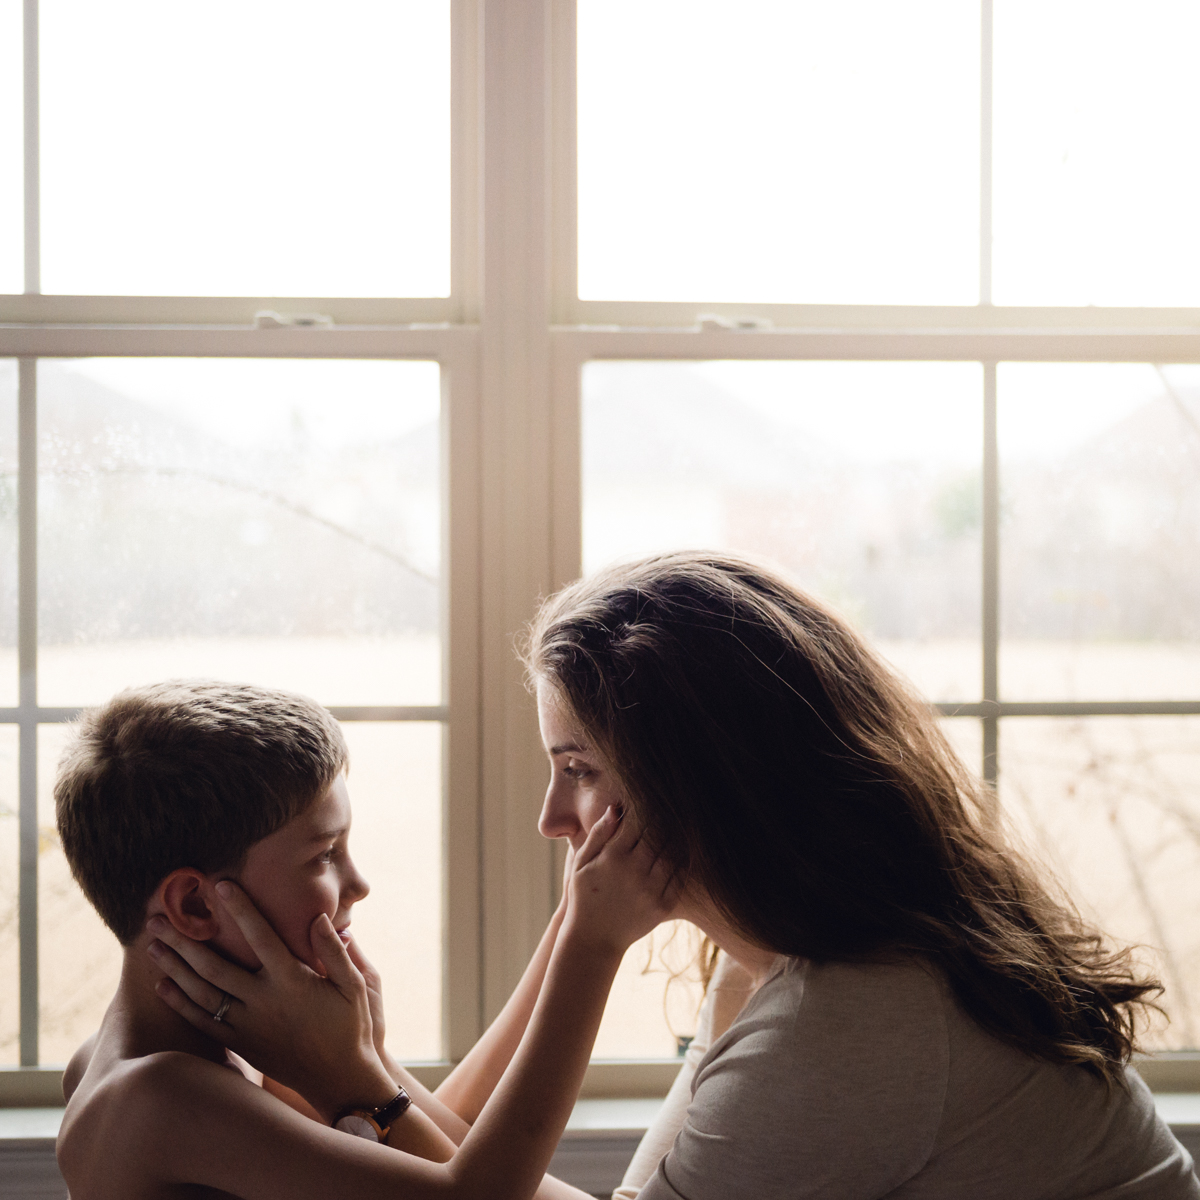 self portrait with boy by megan cieloha in window light